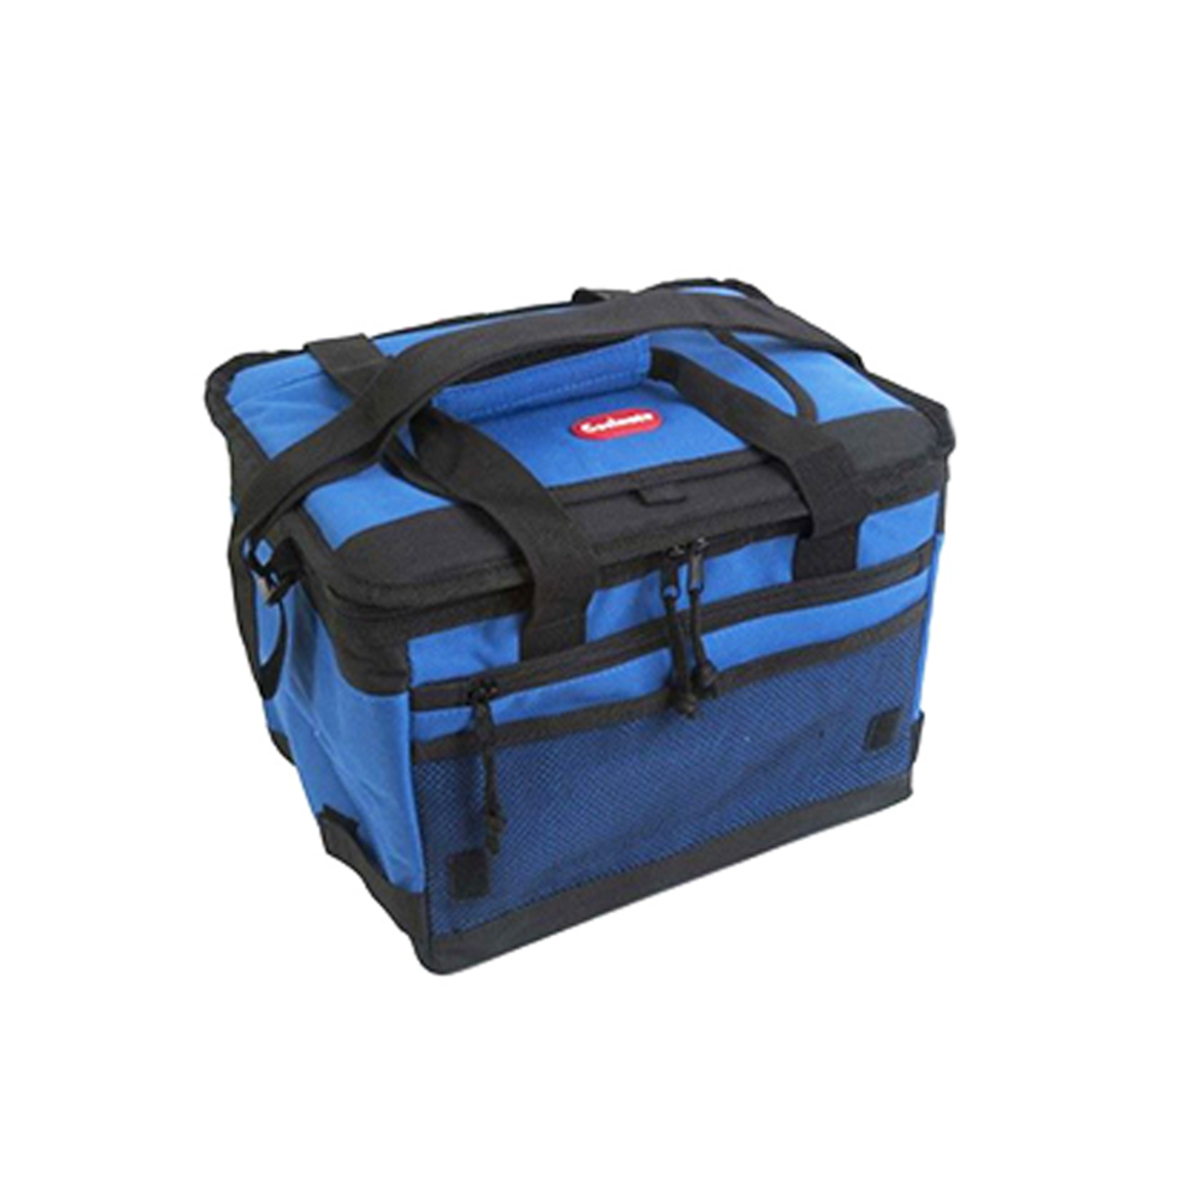 M size Cooler Bag - CM002 (18 cans) (Blue)